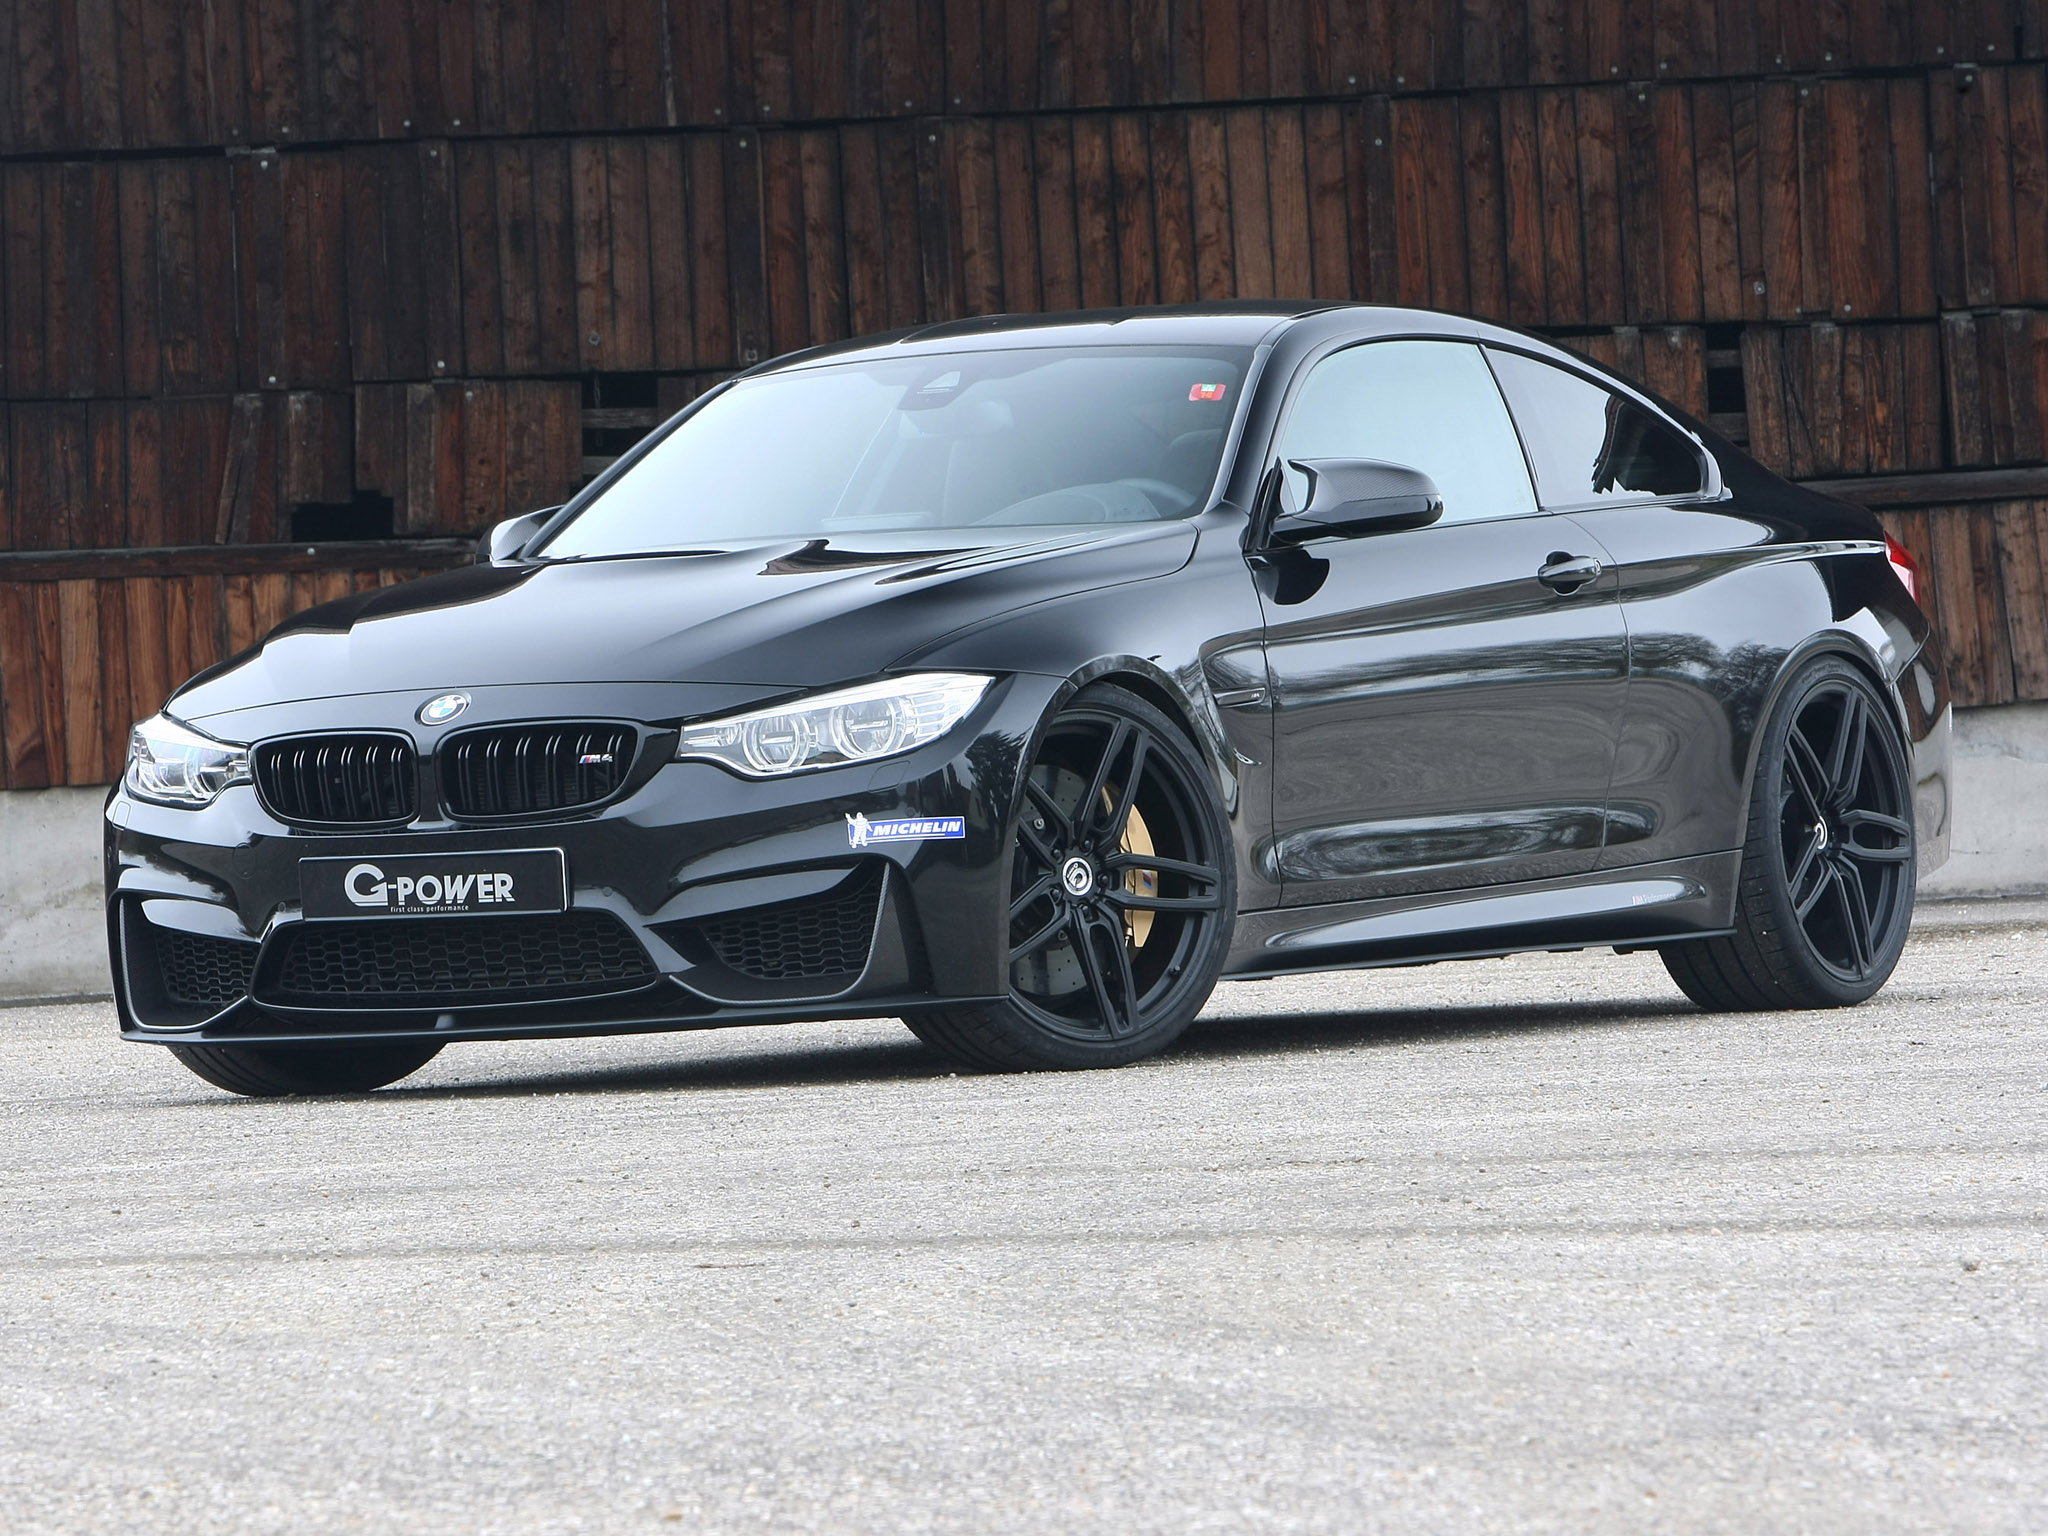 2014 G-Power - Bmw M4 bi-Tronik F82